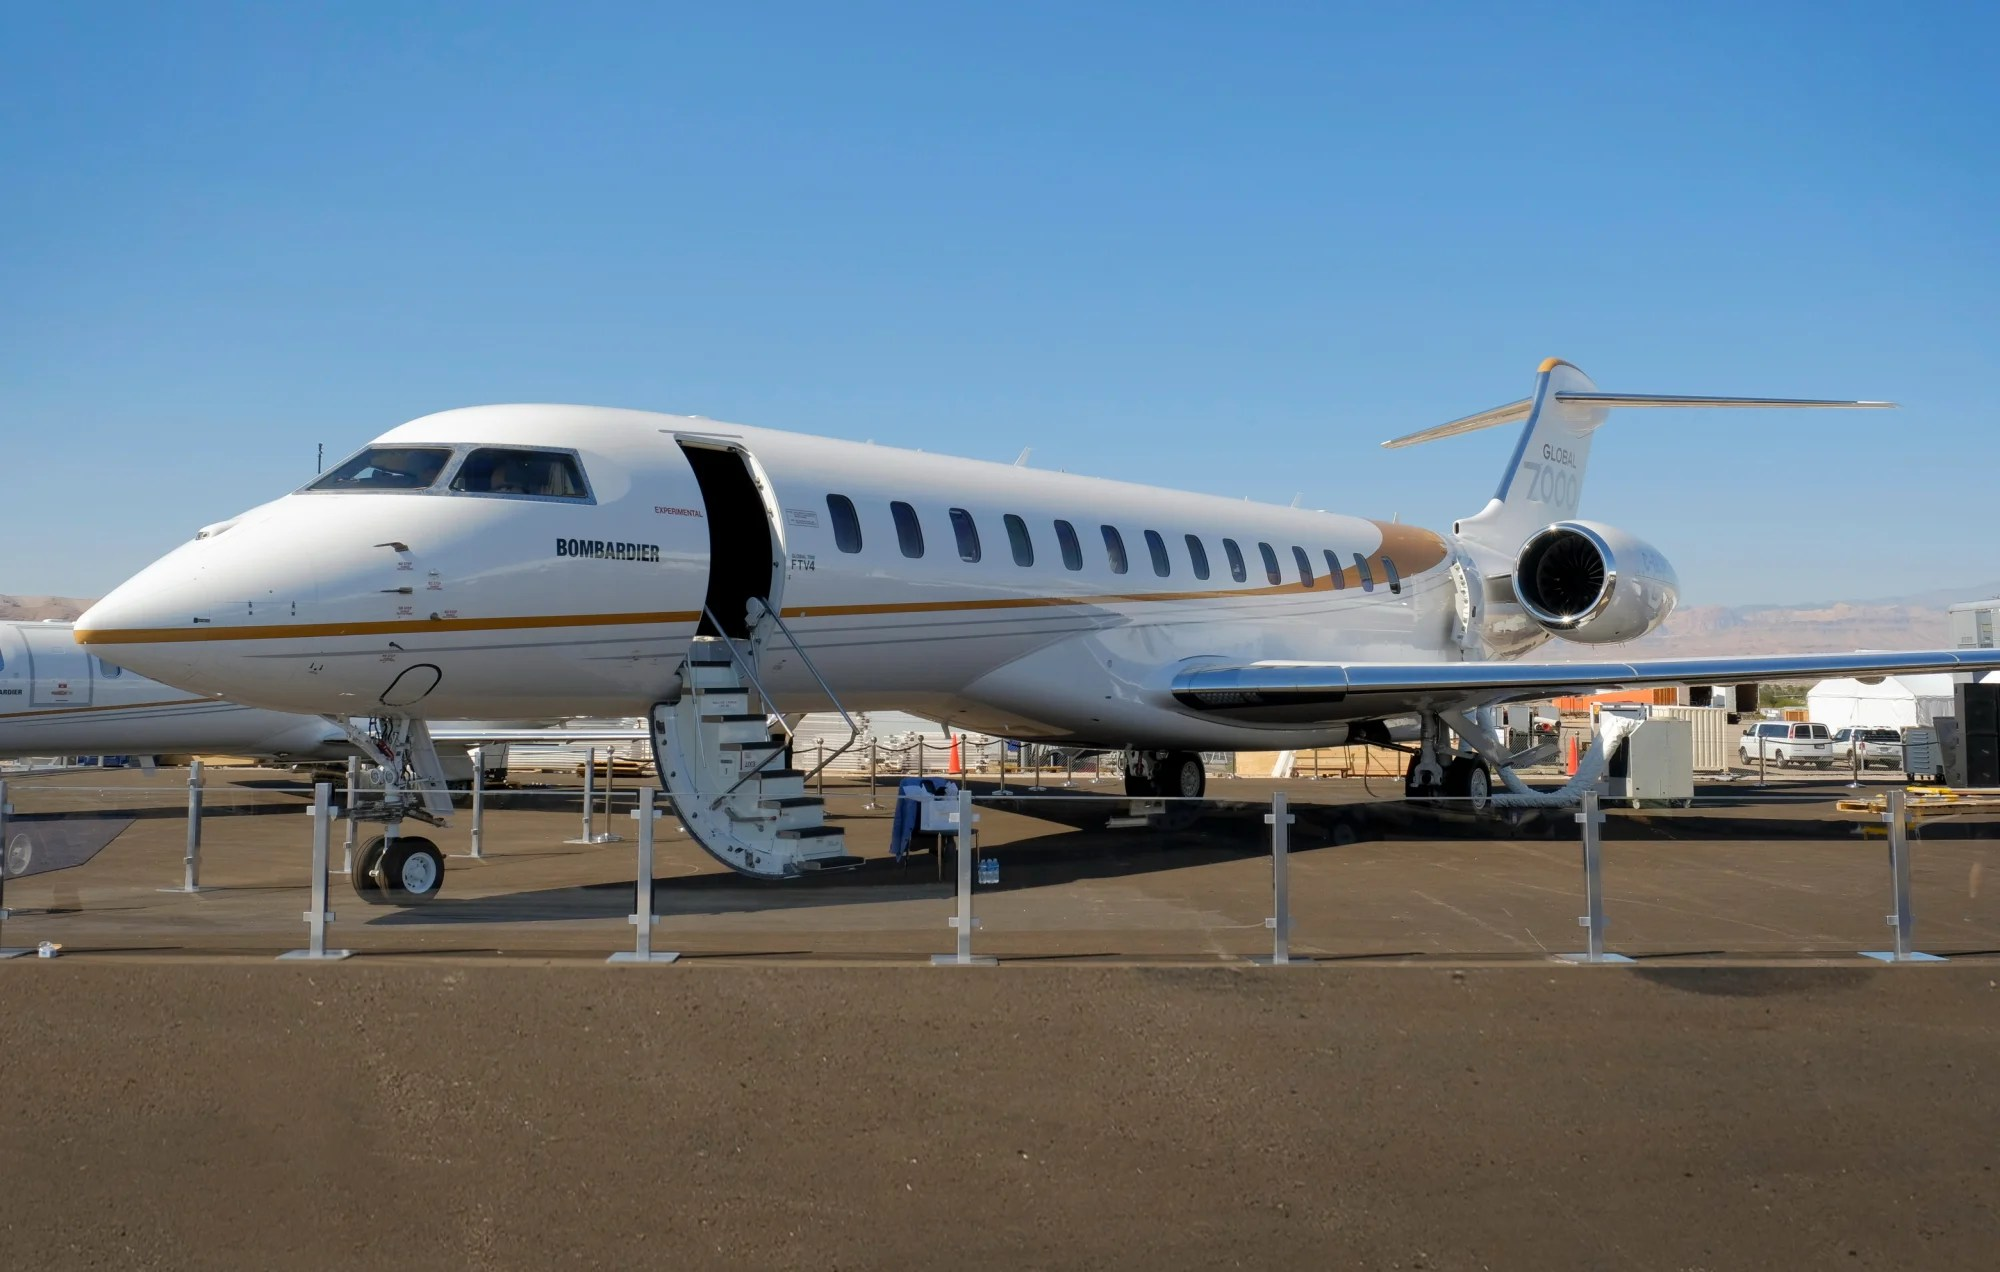 Bombardiers Global 7000 Private Jet Takes Business Travel